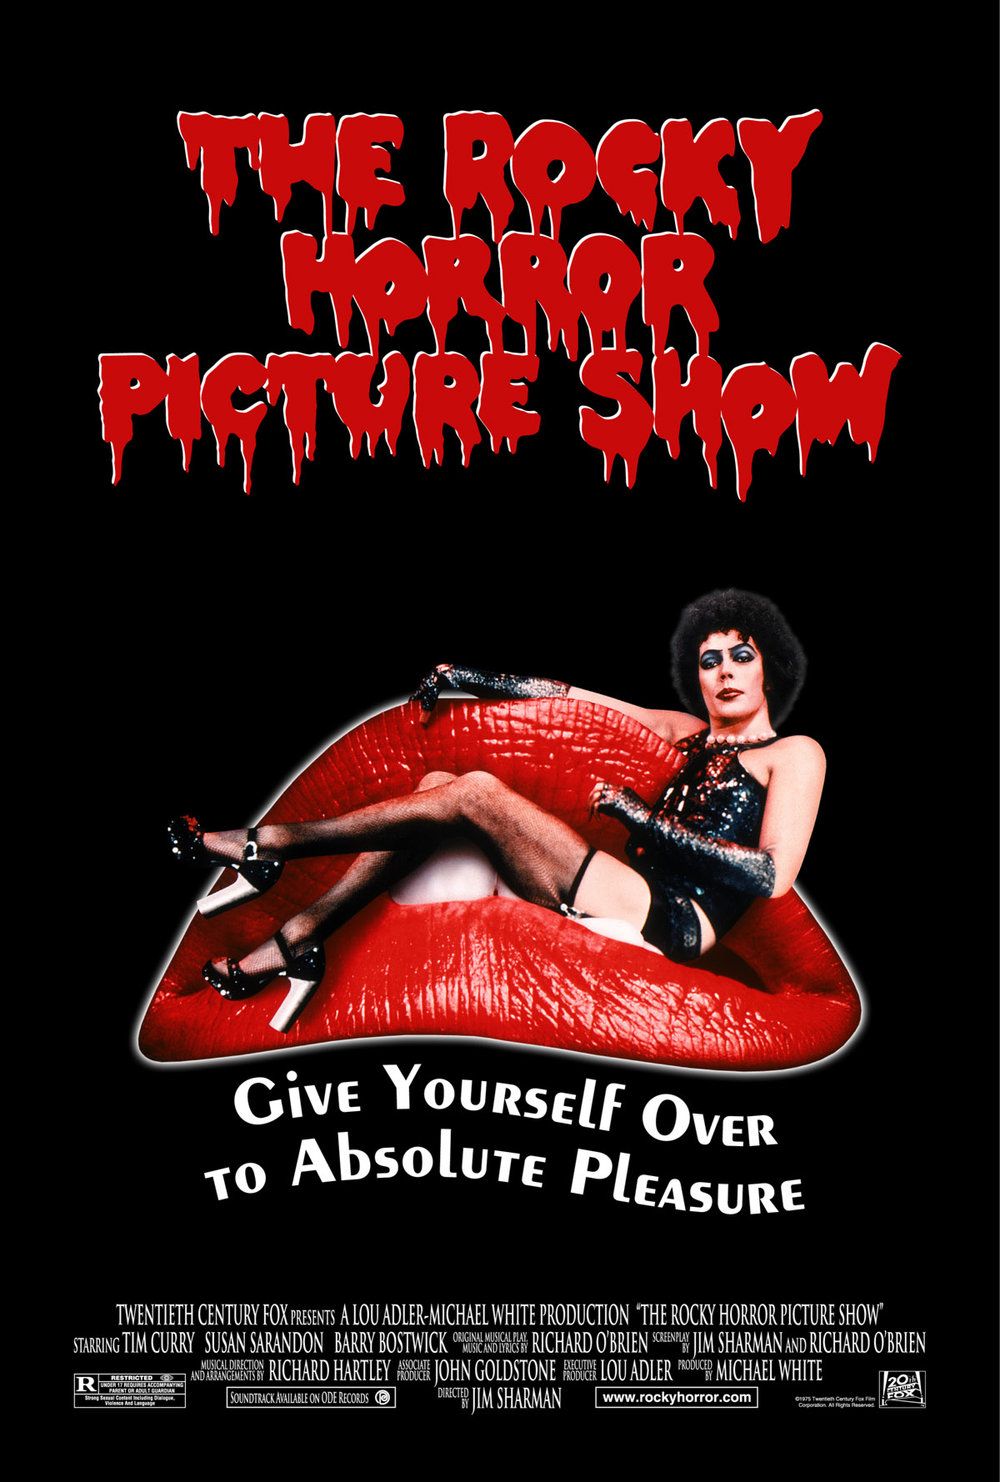 TheRockyHorrorPictureShow.jpg